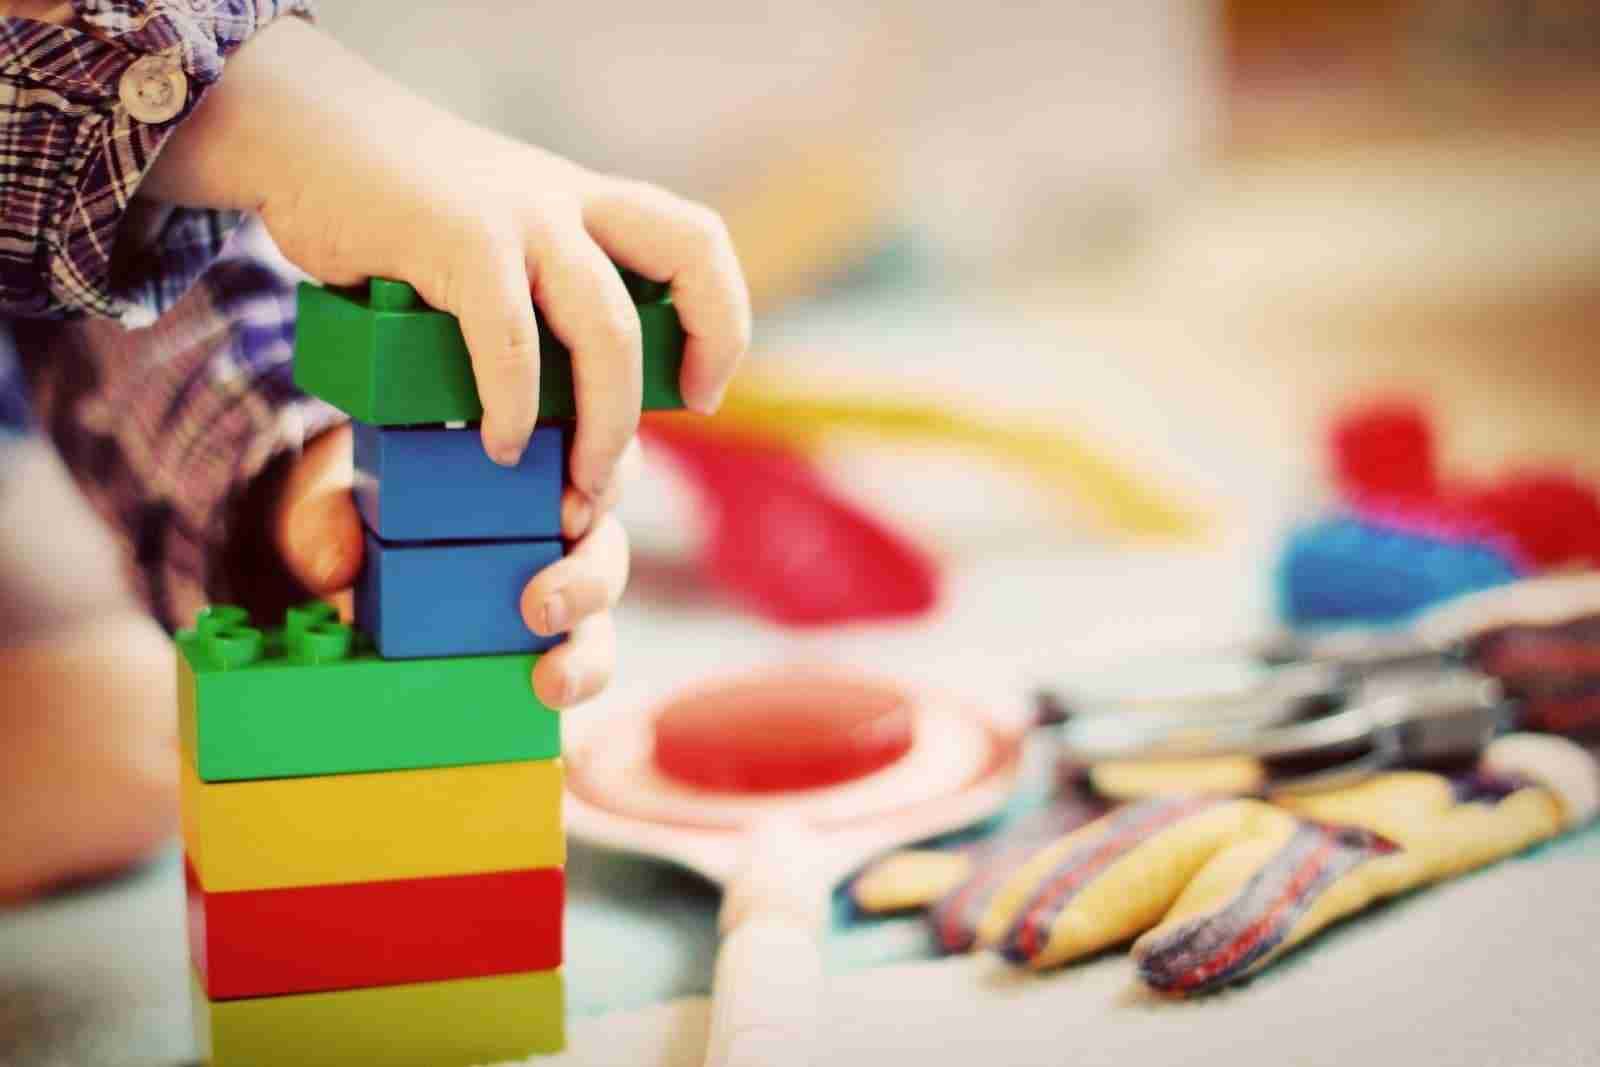 Child in Kindergarten playing with lego blocks